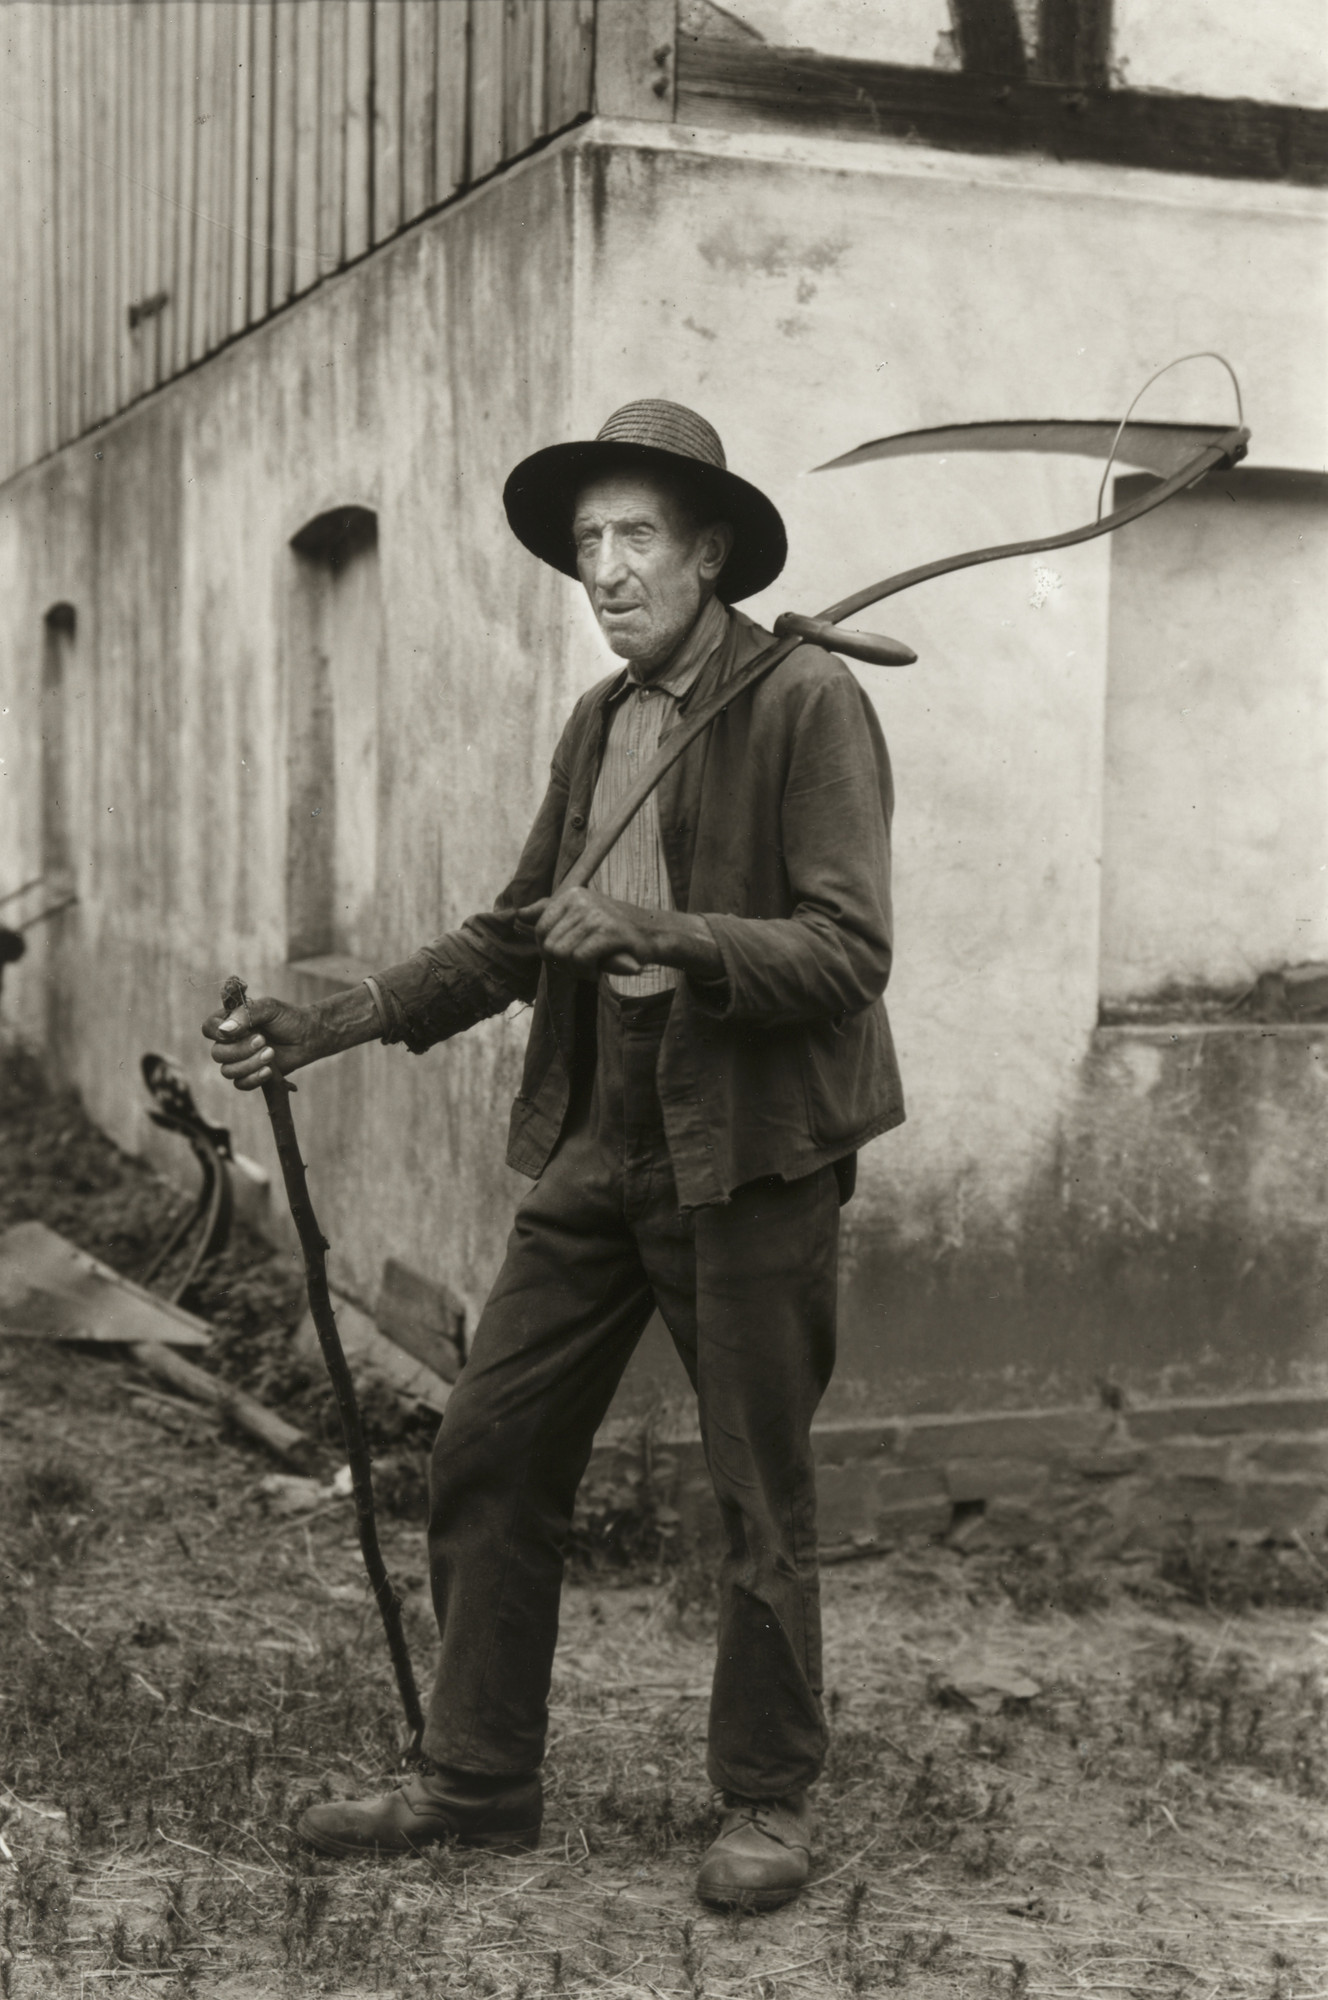 August Sander. Farmer from the Eifel. 1930